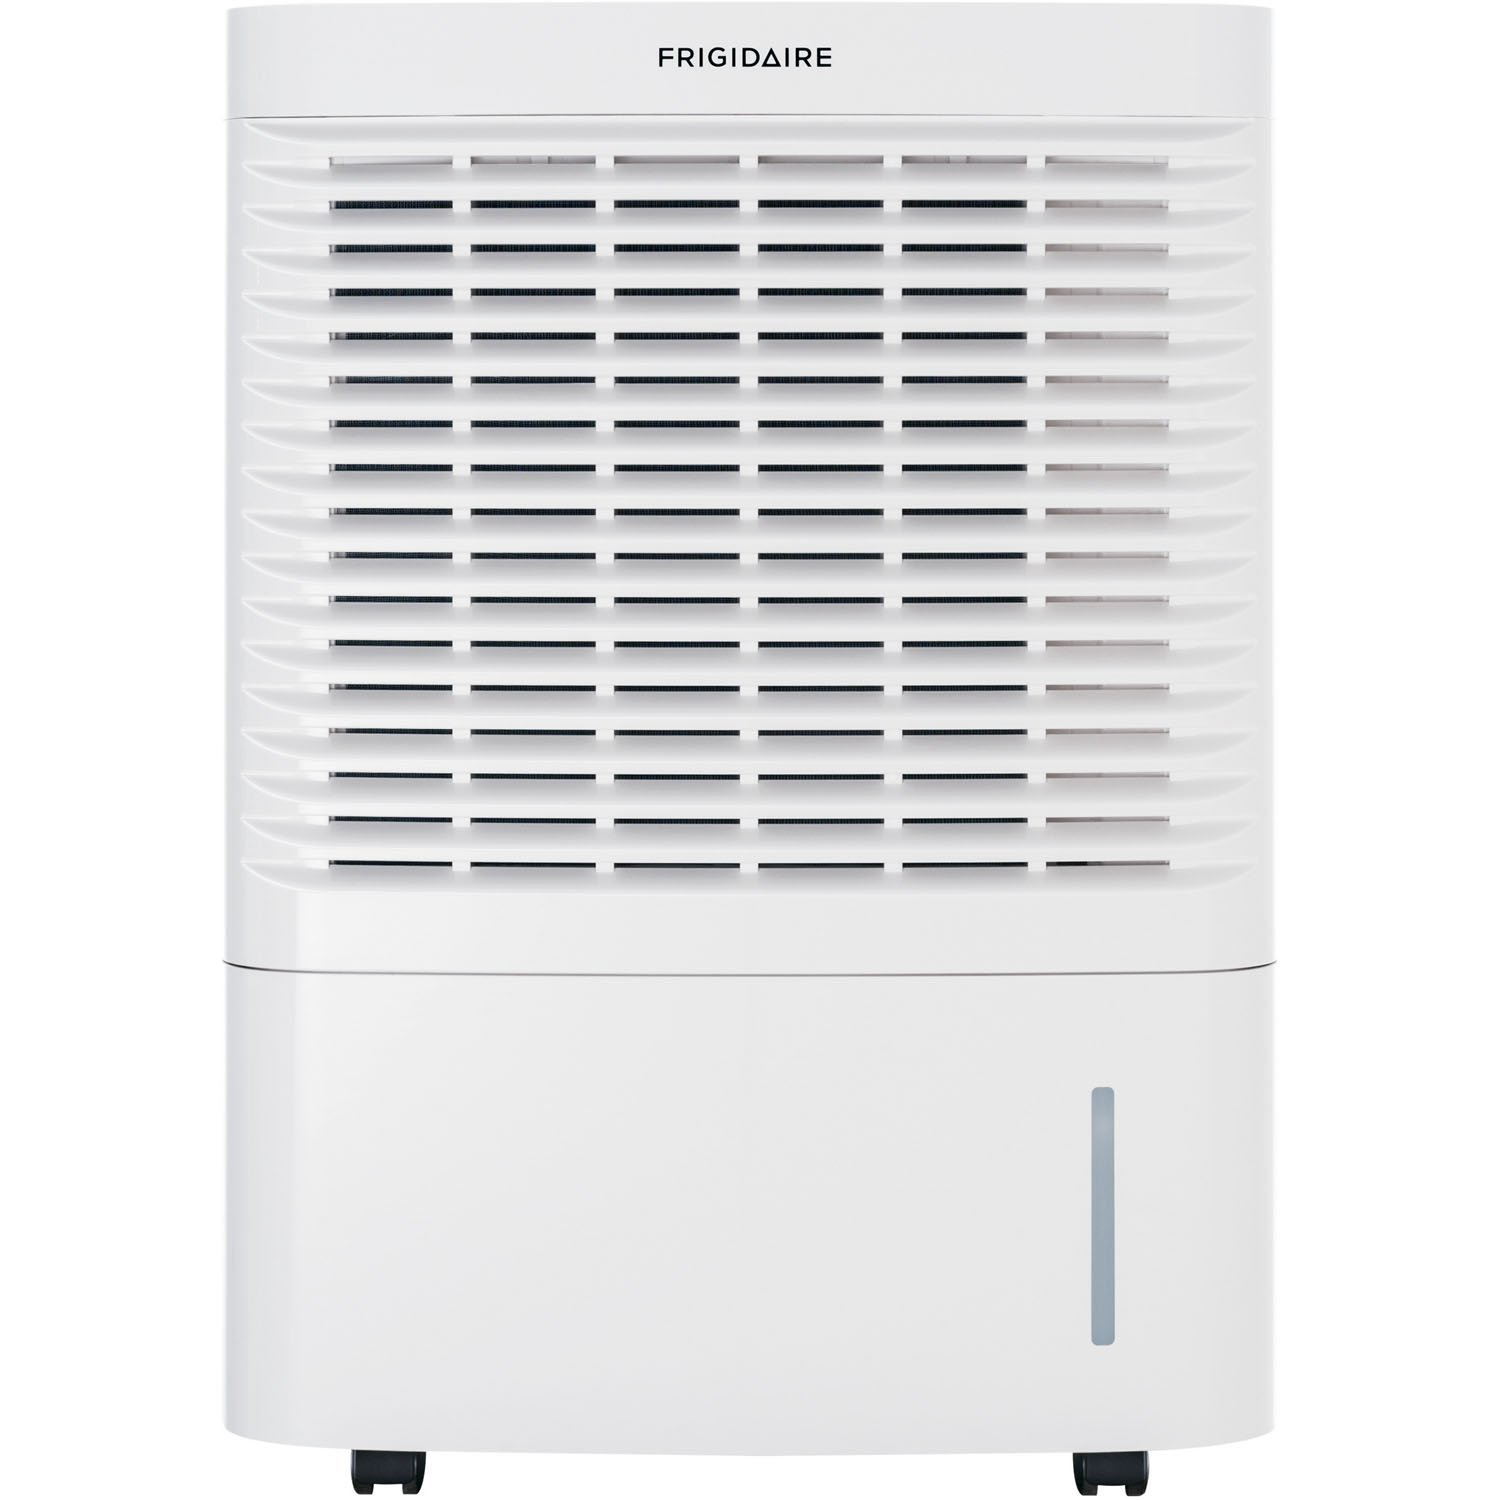 Best Dehumidifier For Basement • The Air Geeks, Reviews Of